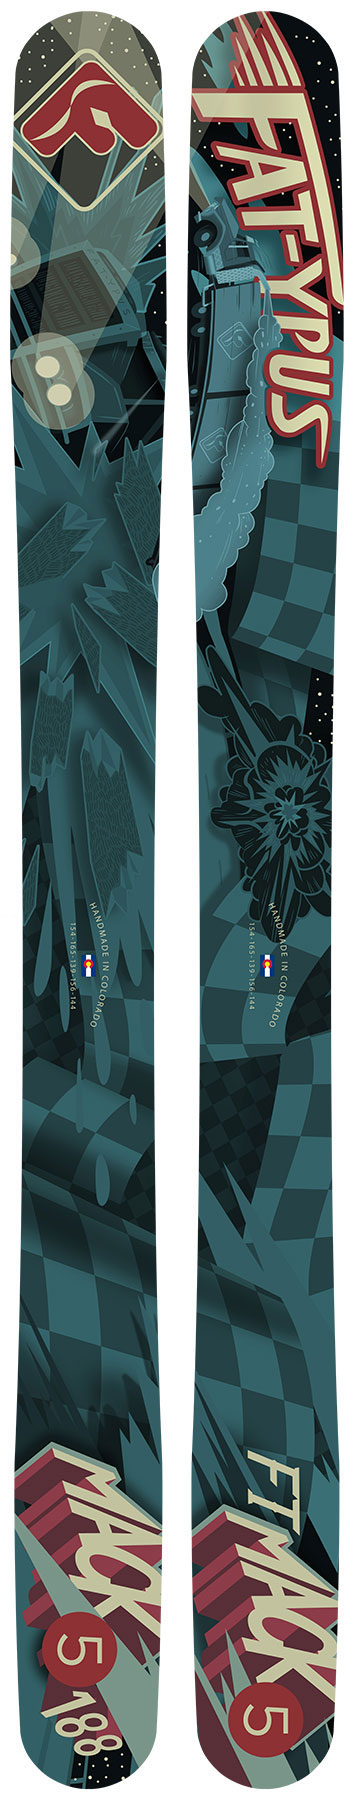 Fat-ypus Ski Graphic Gallery - Fat-ypus Handmade Skis